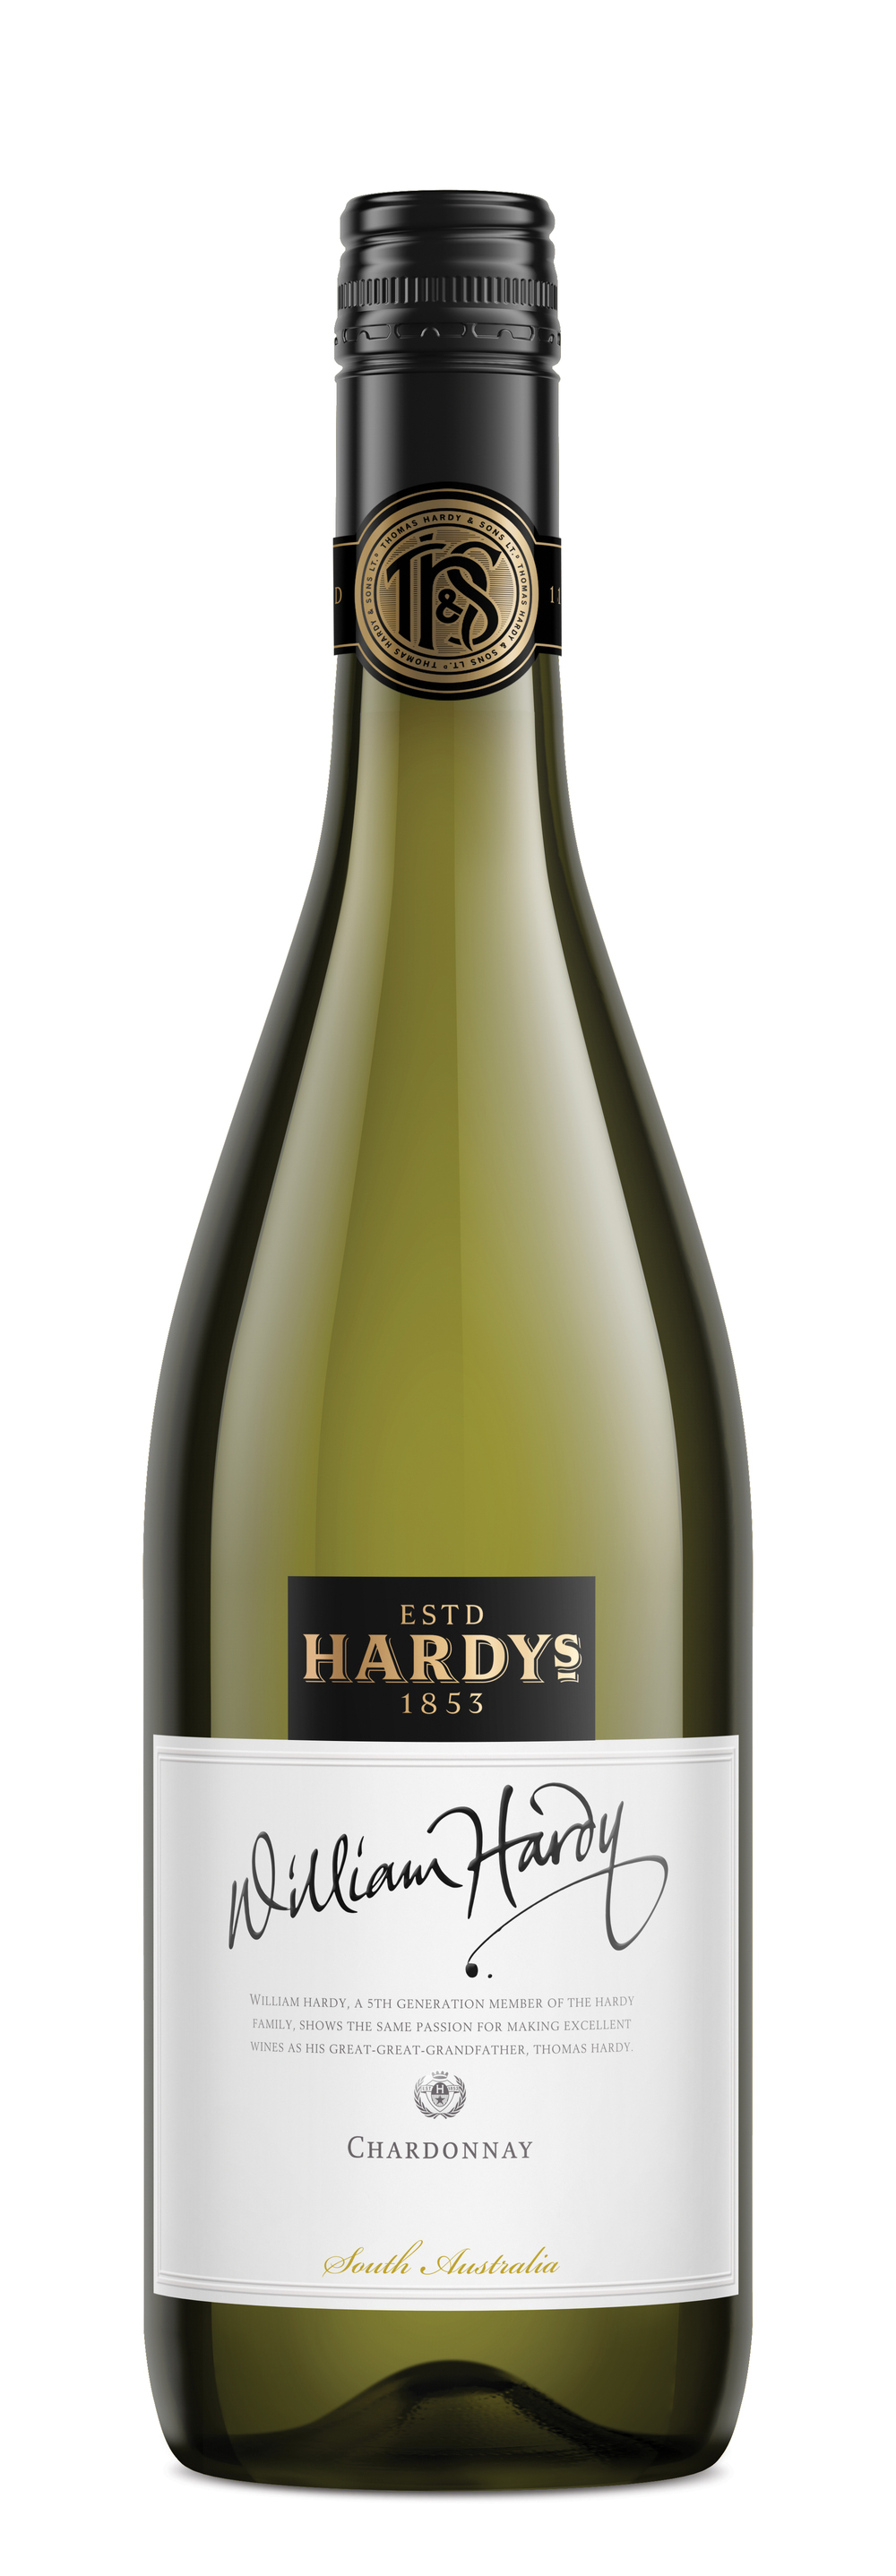 The William Hardy Chardonnay 2013